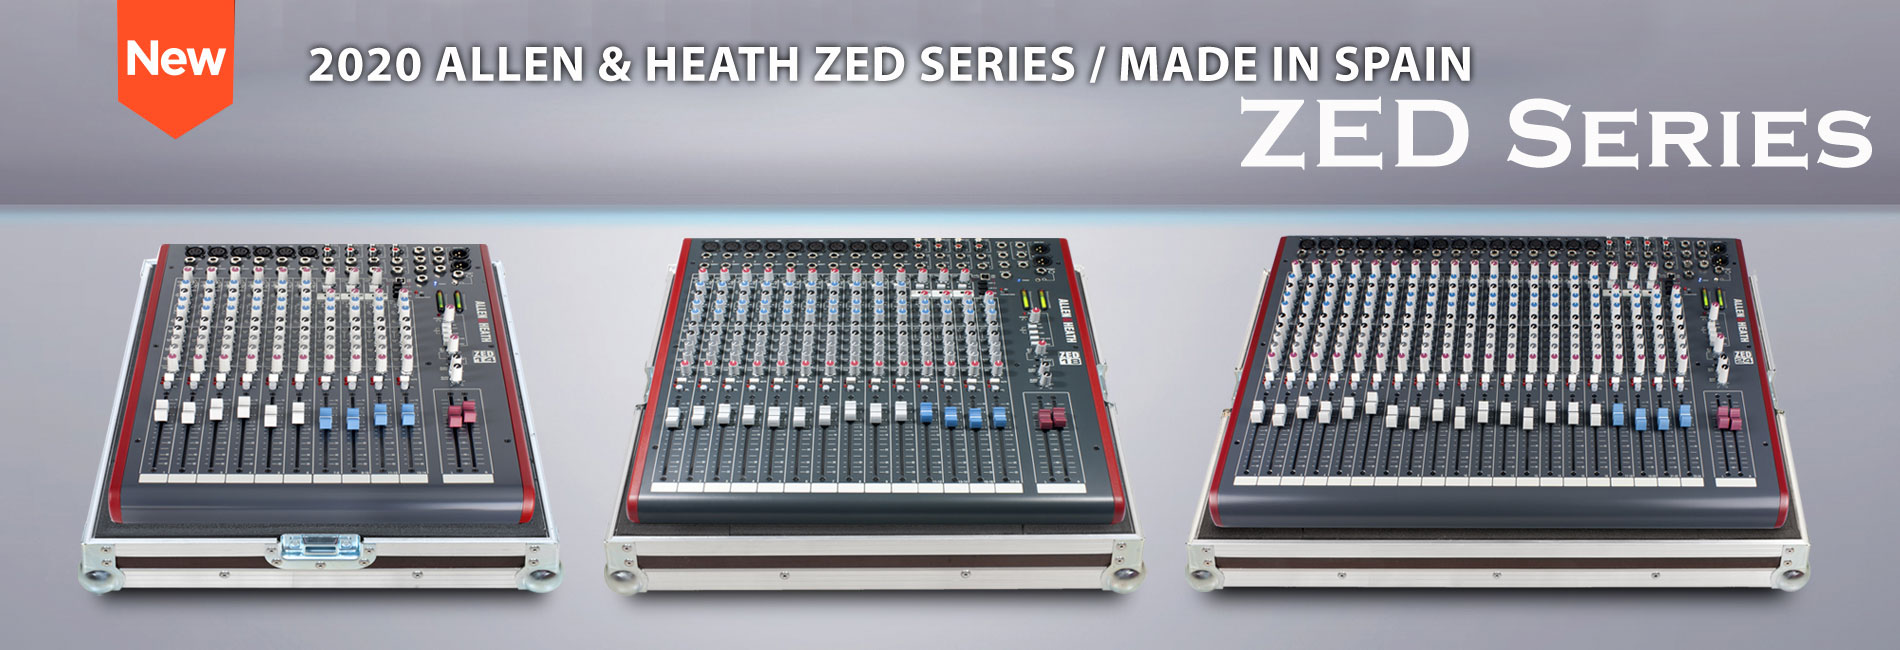 Allen&heath ZED SERIES